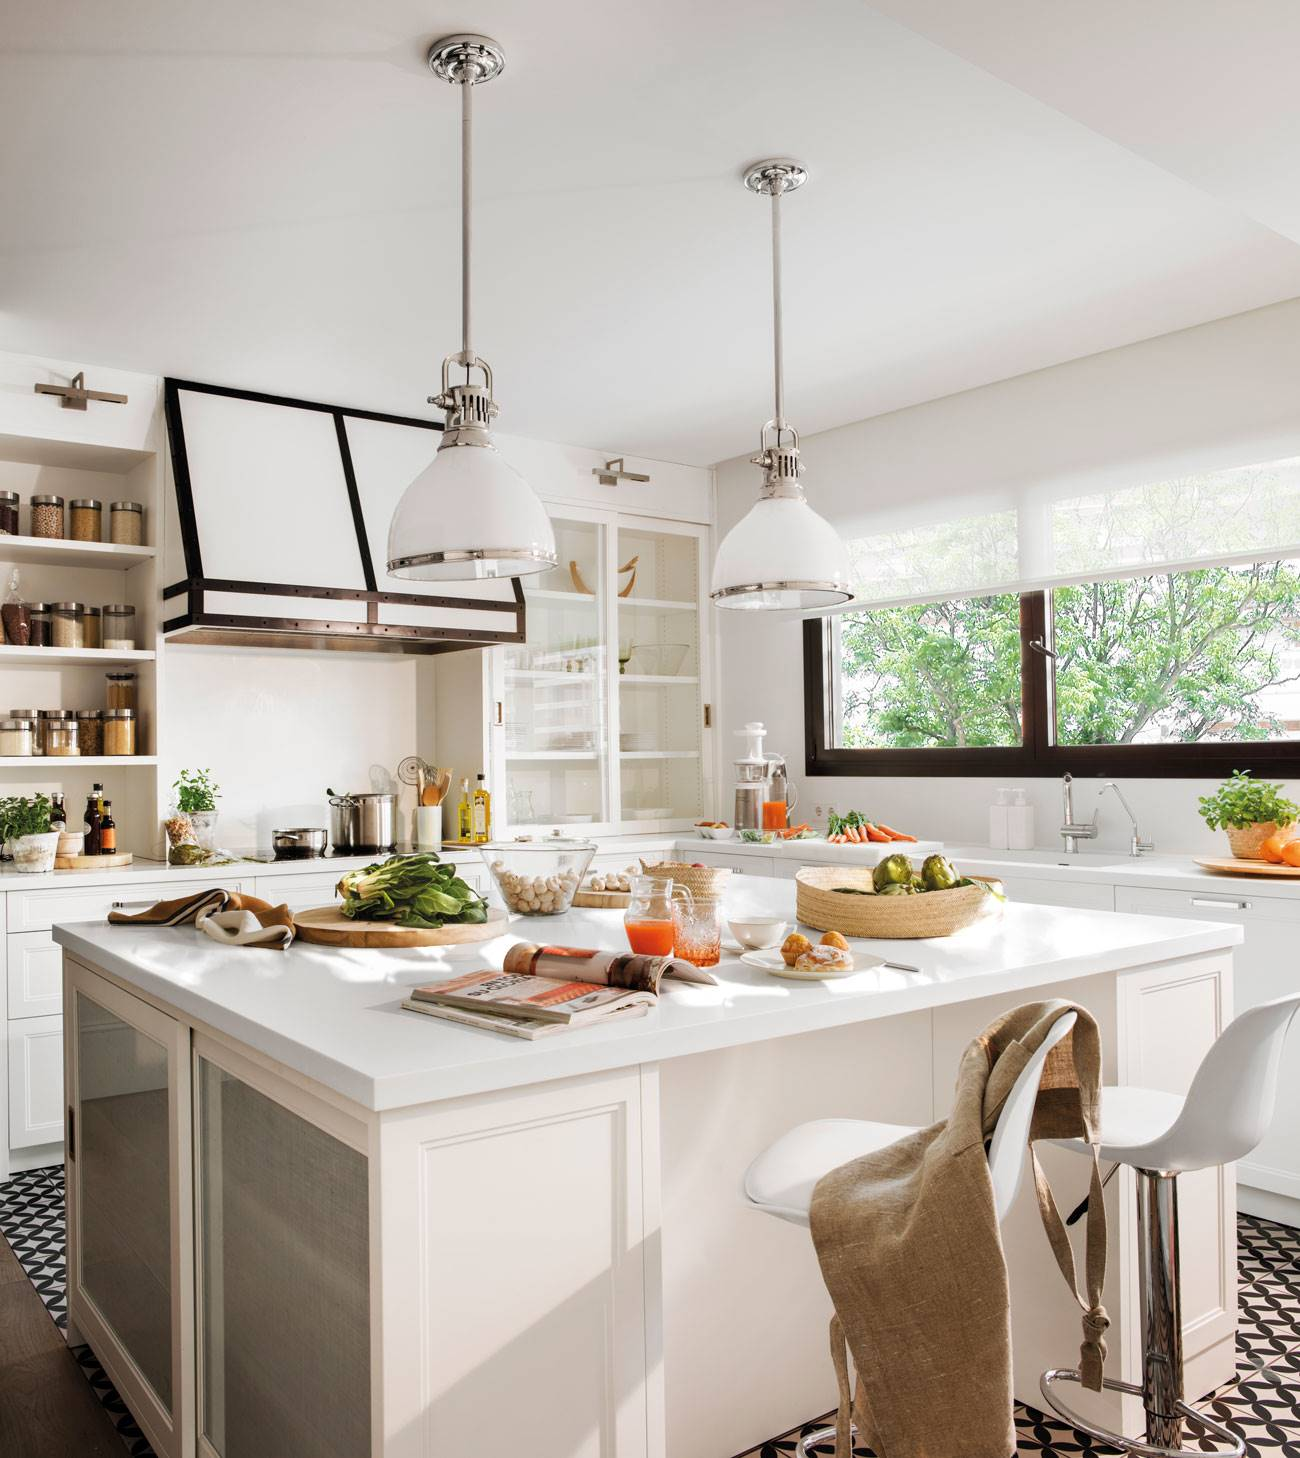 classic-kitchen-renovated-in-white-and-touches-of-black 503643. Urban and chic